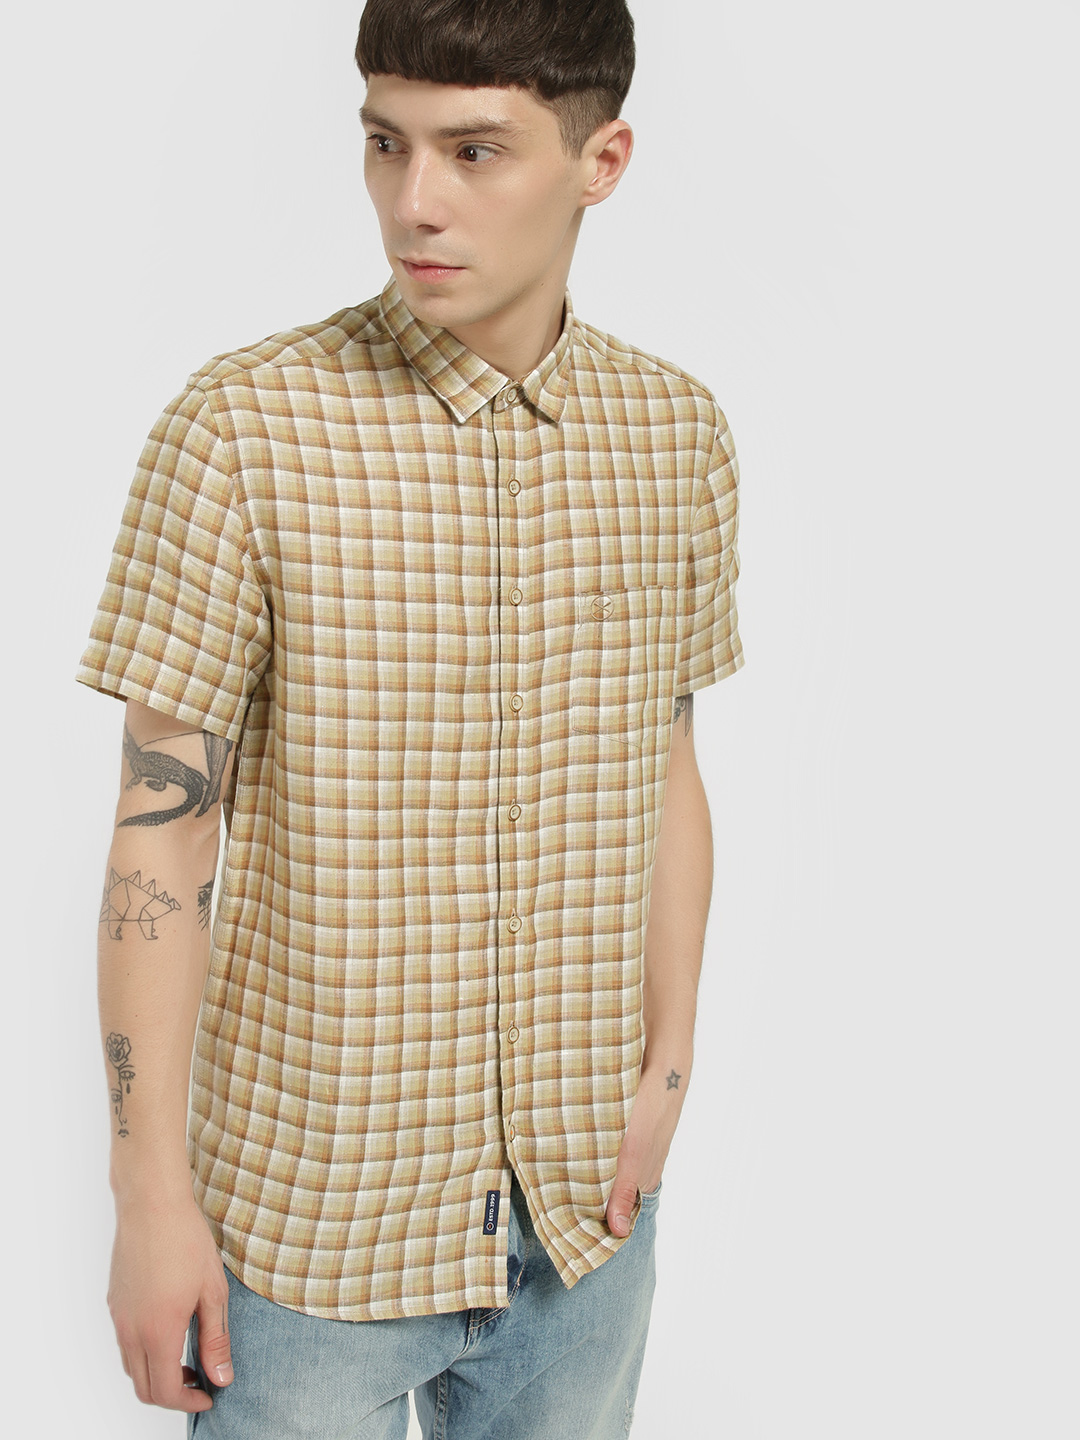 SCULLERS Brown Multi-Check Short Sleeve Shirt 1